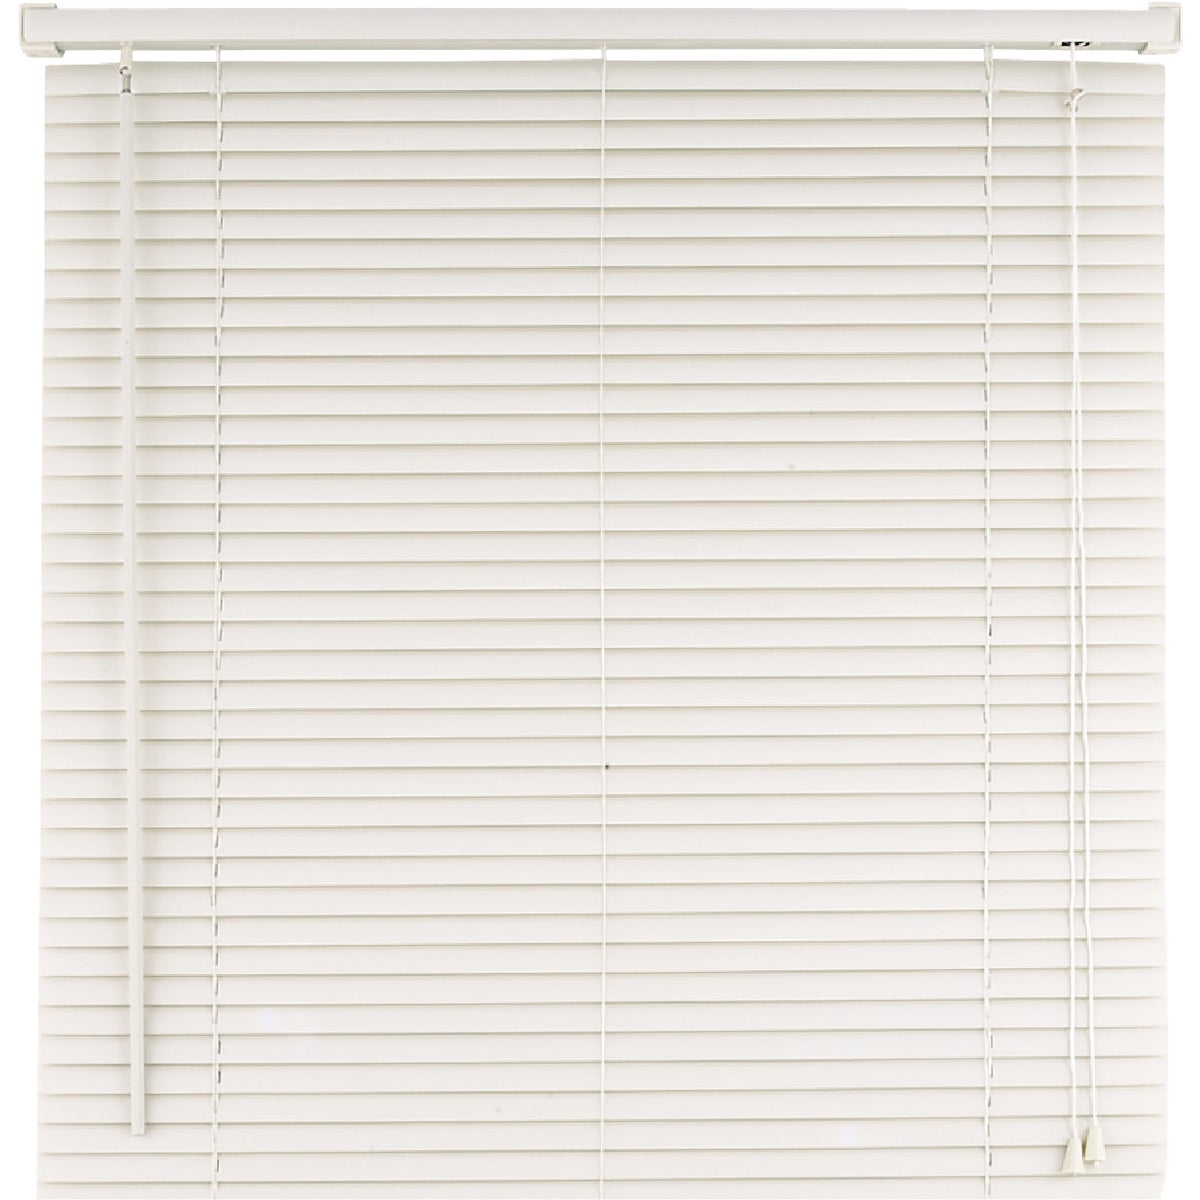 29X72 WHITE MINI BLIND - 2972W by Lotus Wind Incom